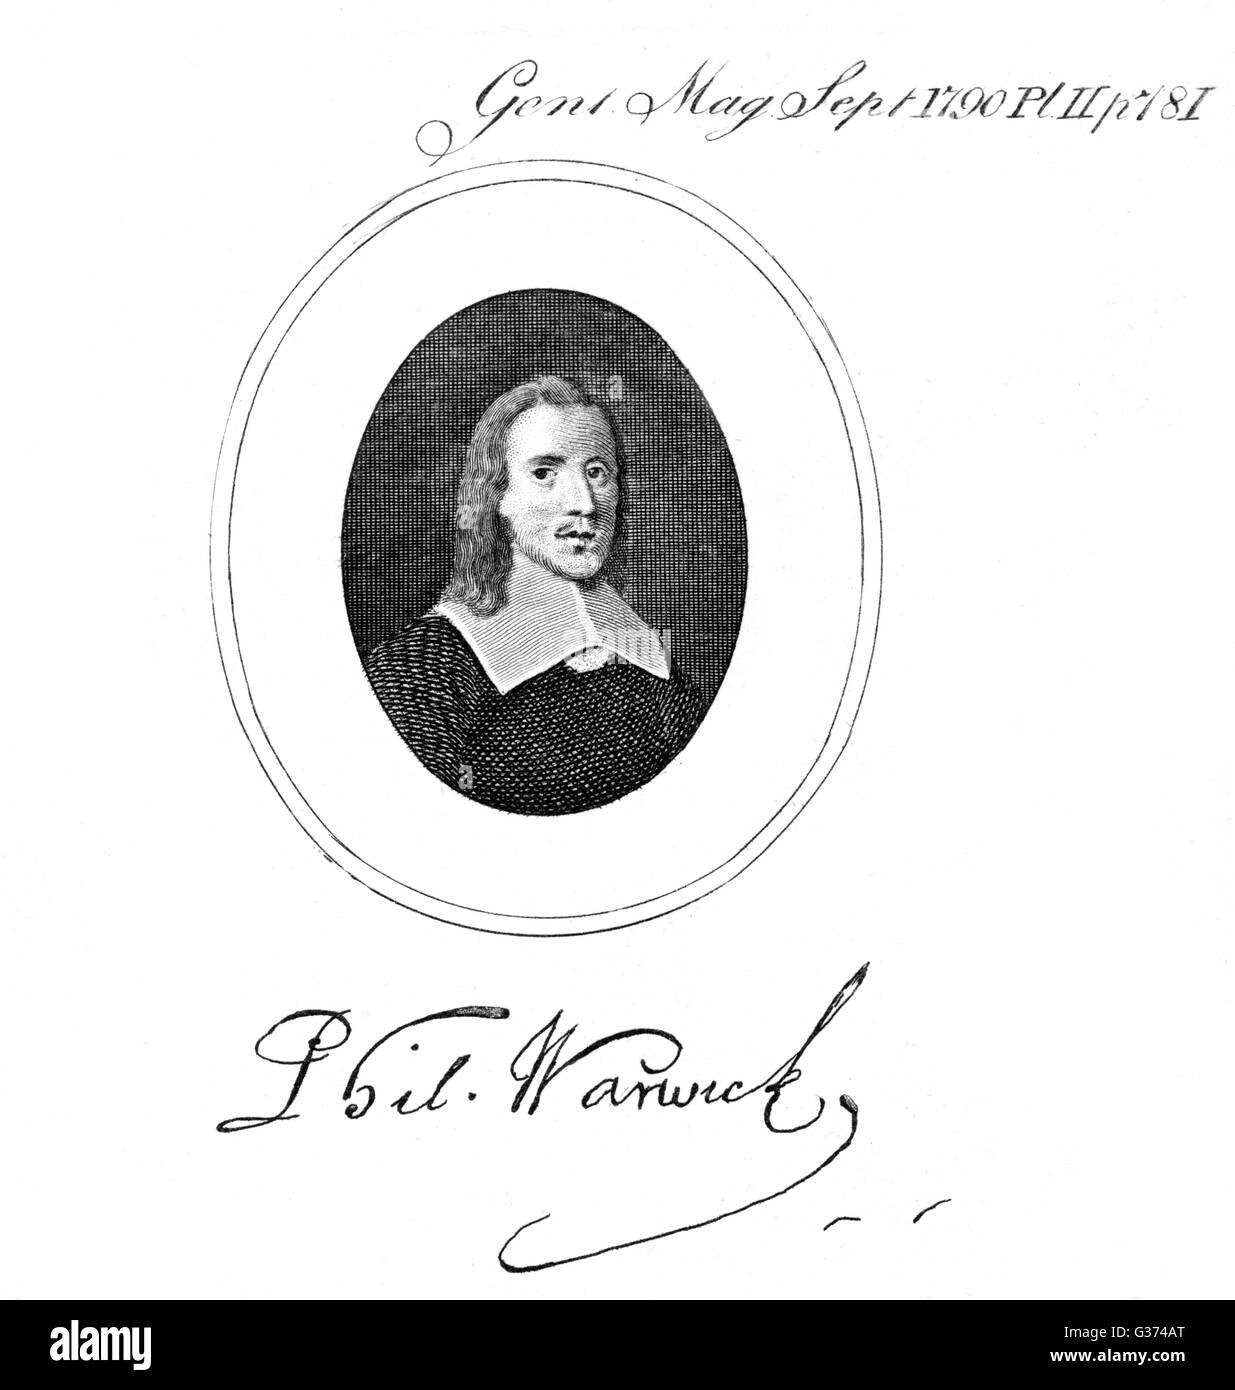 PHILIP WARWICK diplomat  with his autograph       Date: ? - 1683 - Stock Image